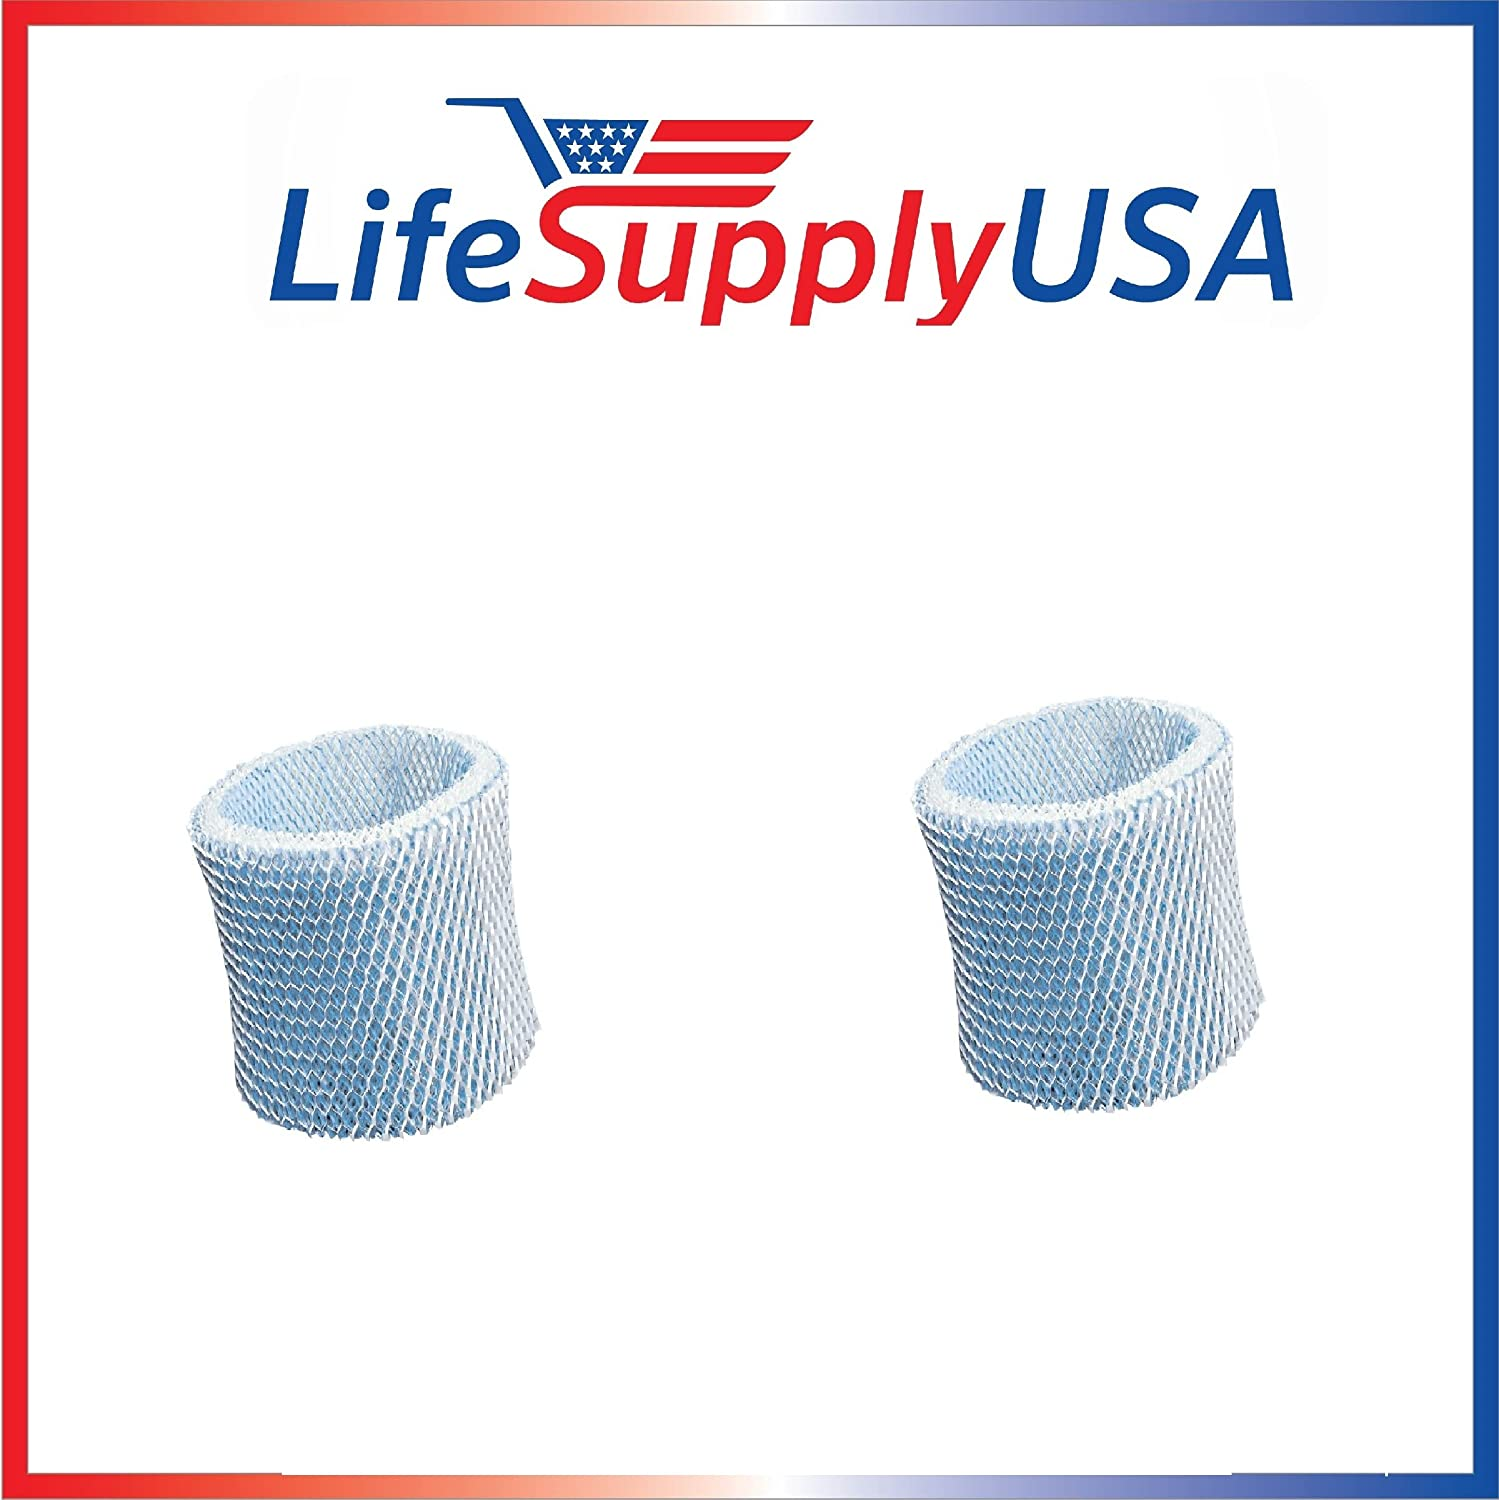 LifeSupplyUSA 2 Pack Humidifier Replacement Filter Compatible with Graco 4 Gallon Model 2H02 2H03 and Compatible with Hamilton Beach TrueAir 05520 05521 05920